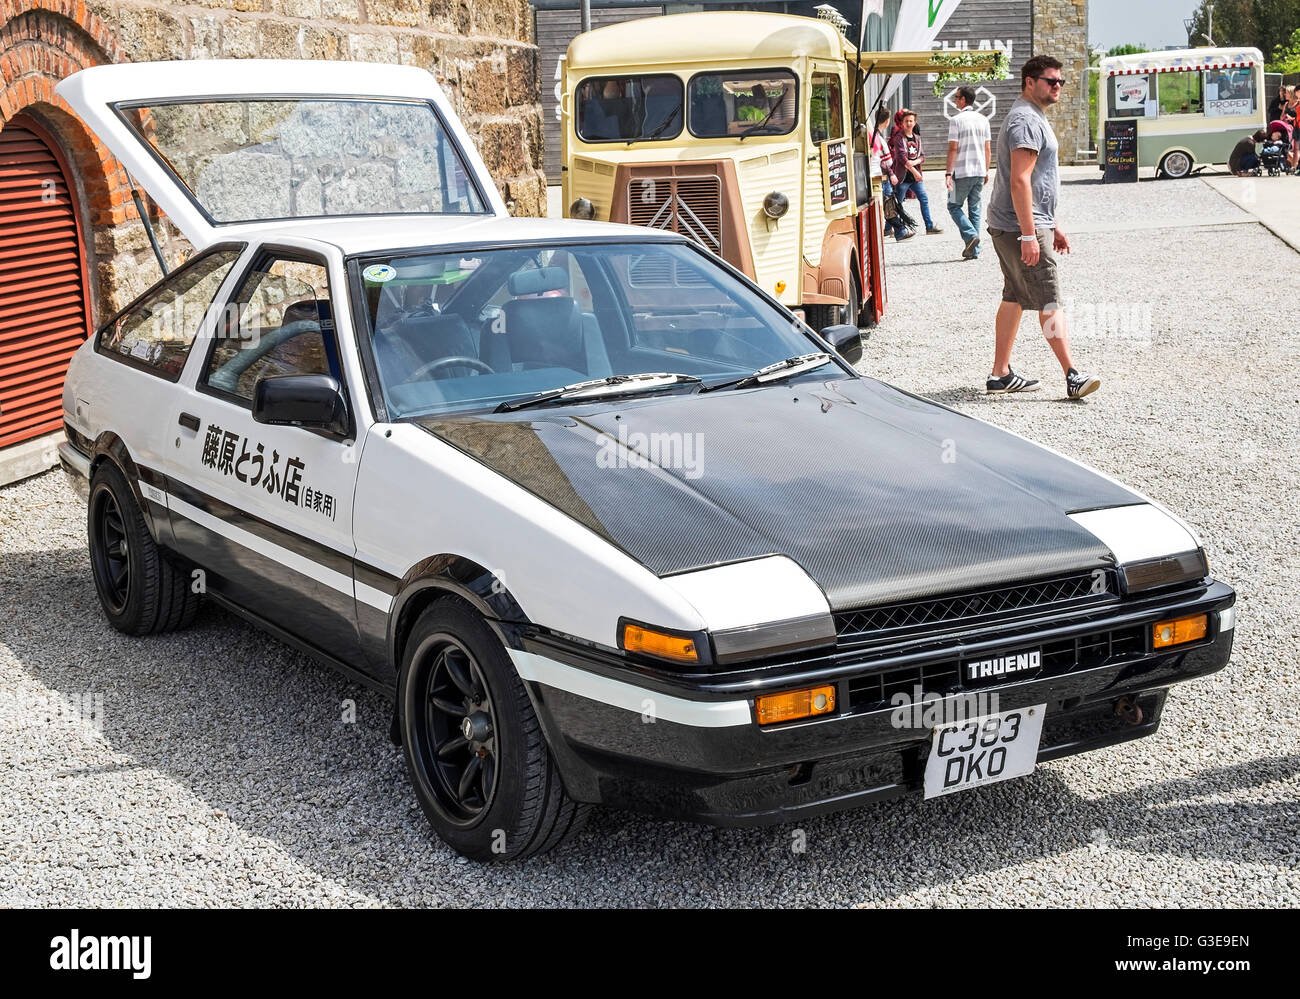 A Toyota AE 86 - Stock Image